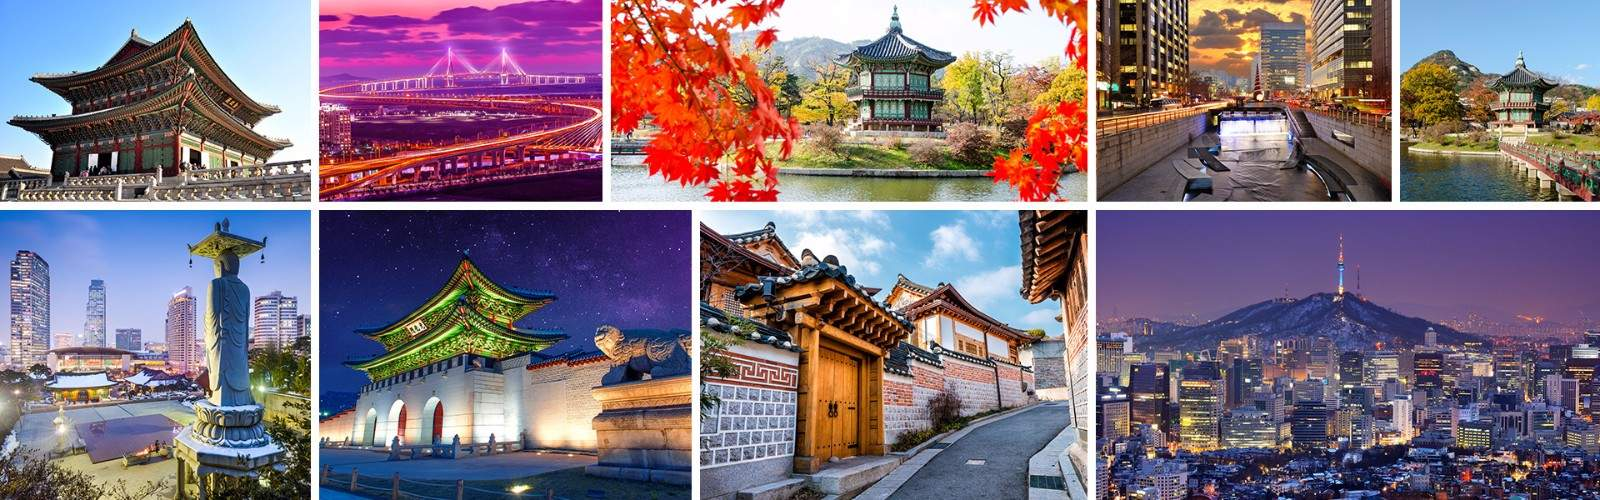 Wendy Wu Tours South Korea Holidays